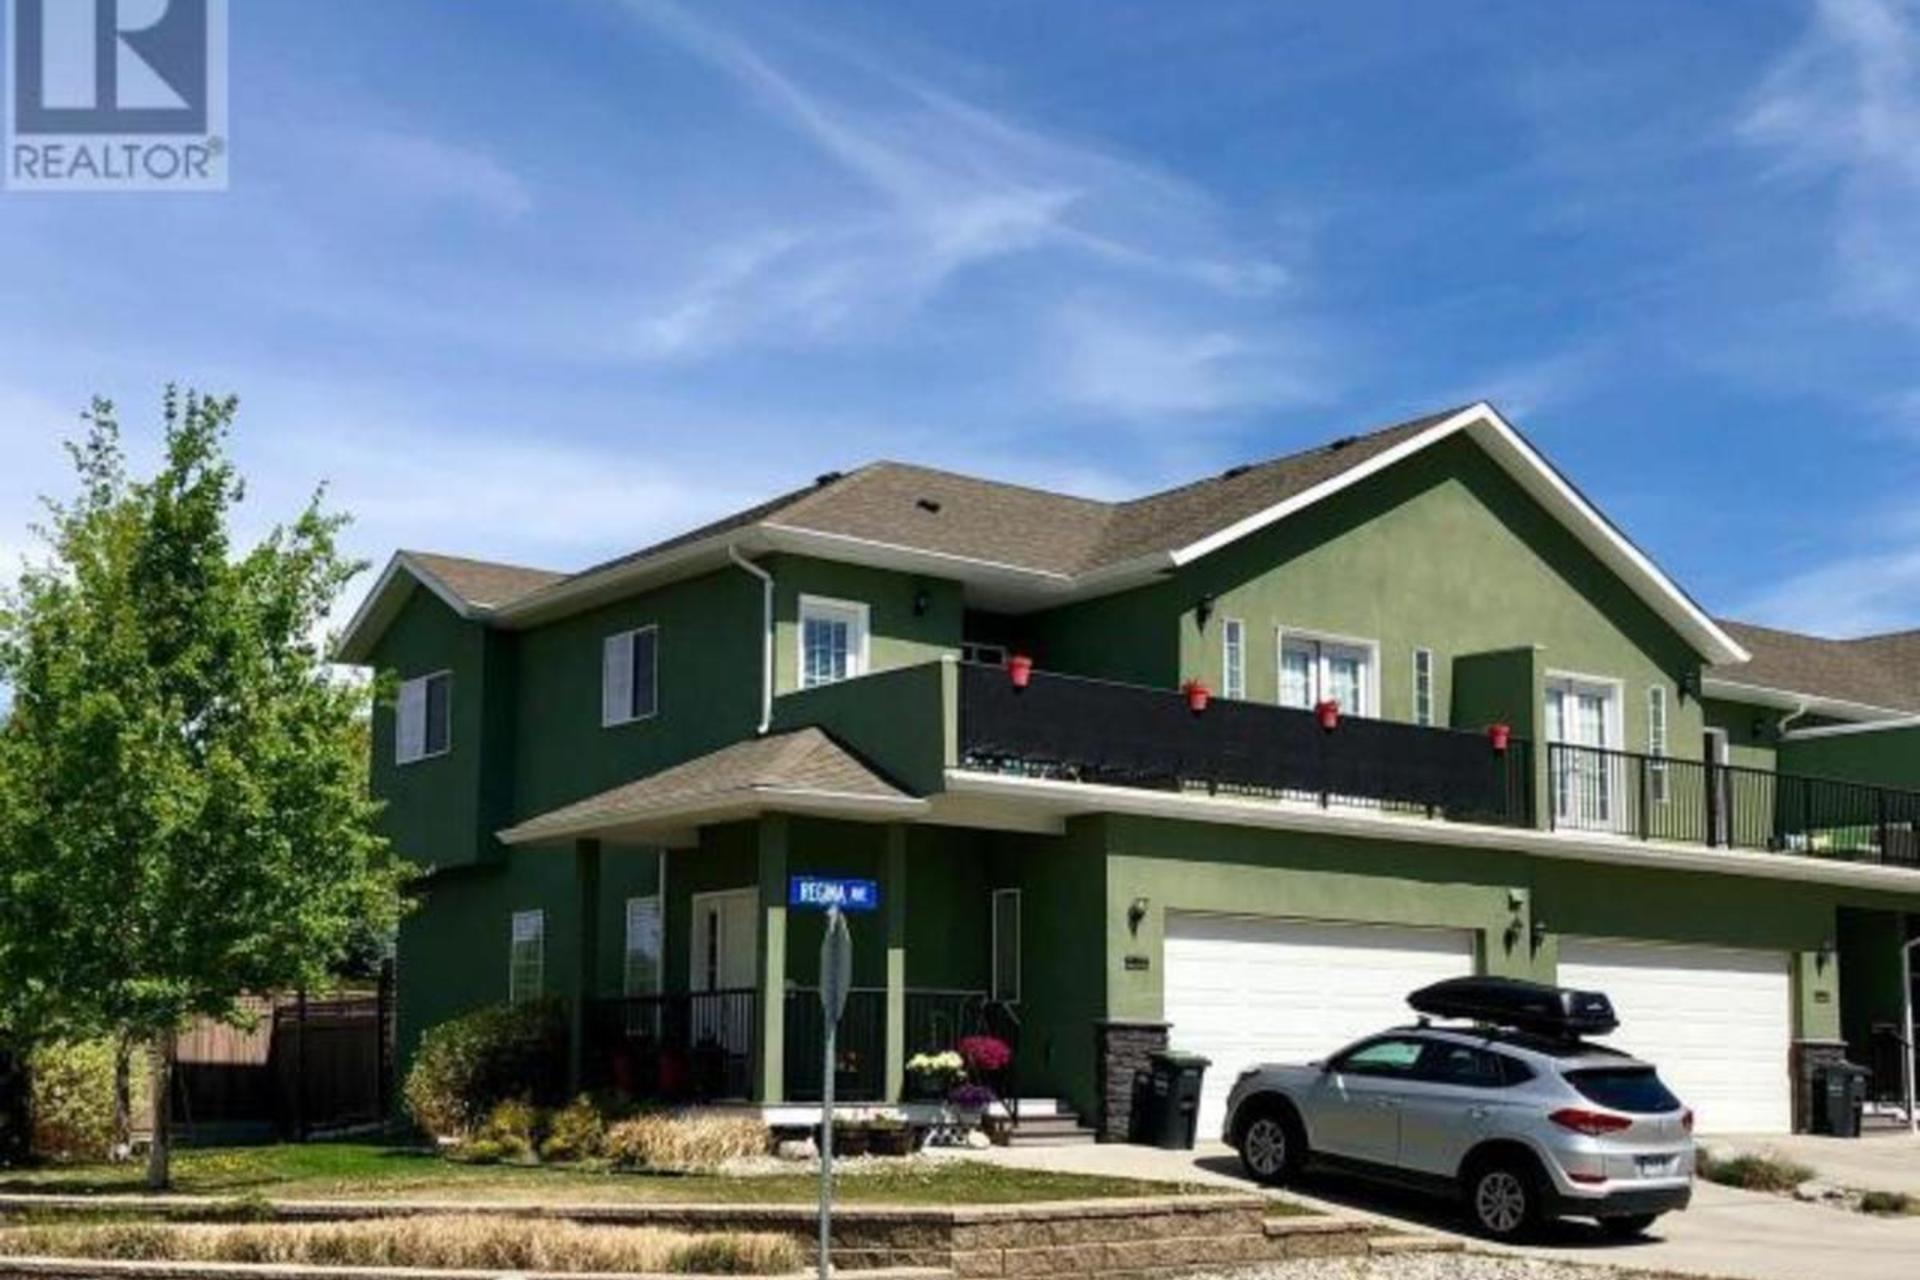 101 - 1096 Fairview Road, Main North, Penticton